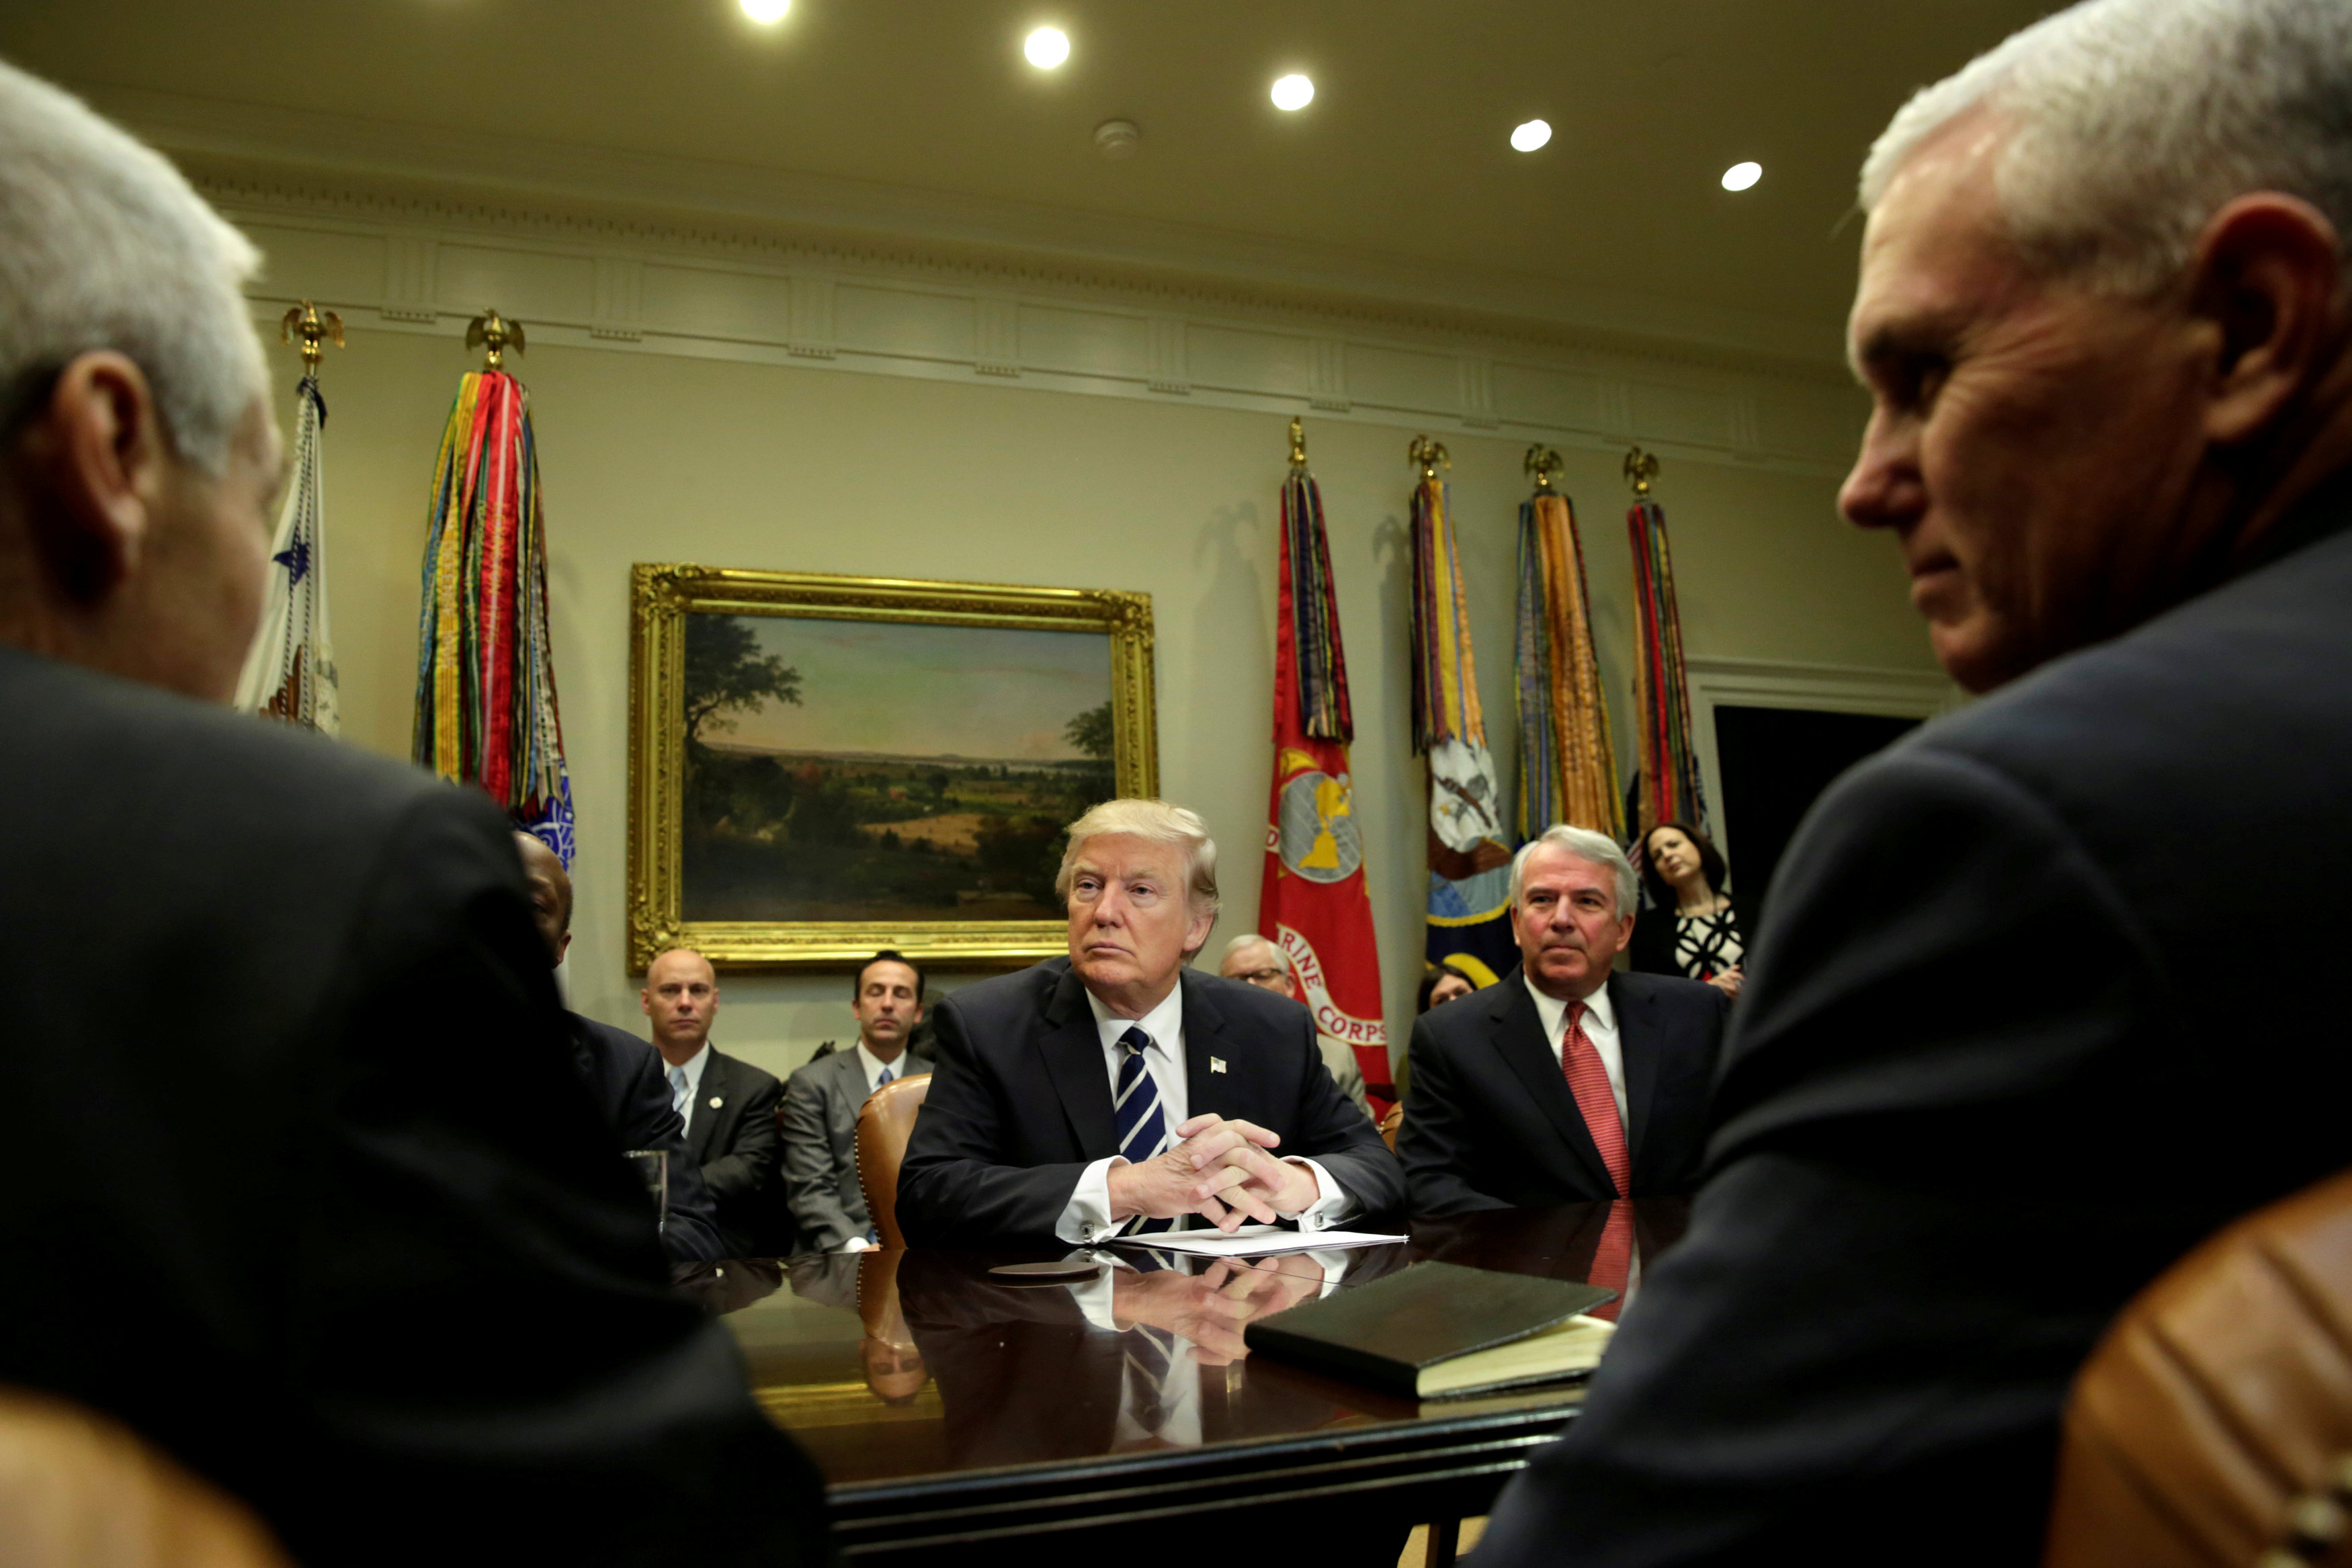 FILE PHOTO - U.S. President Donald Trump (C) and Vice President Mike Pence (R) meet with pharmaceutical industry representatives at the White House in Washington, U.S. on January 31, 2017. REUTERS/Yuri Gripas/File Photo